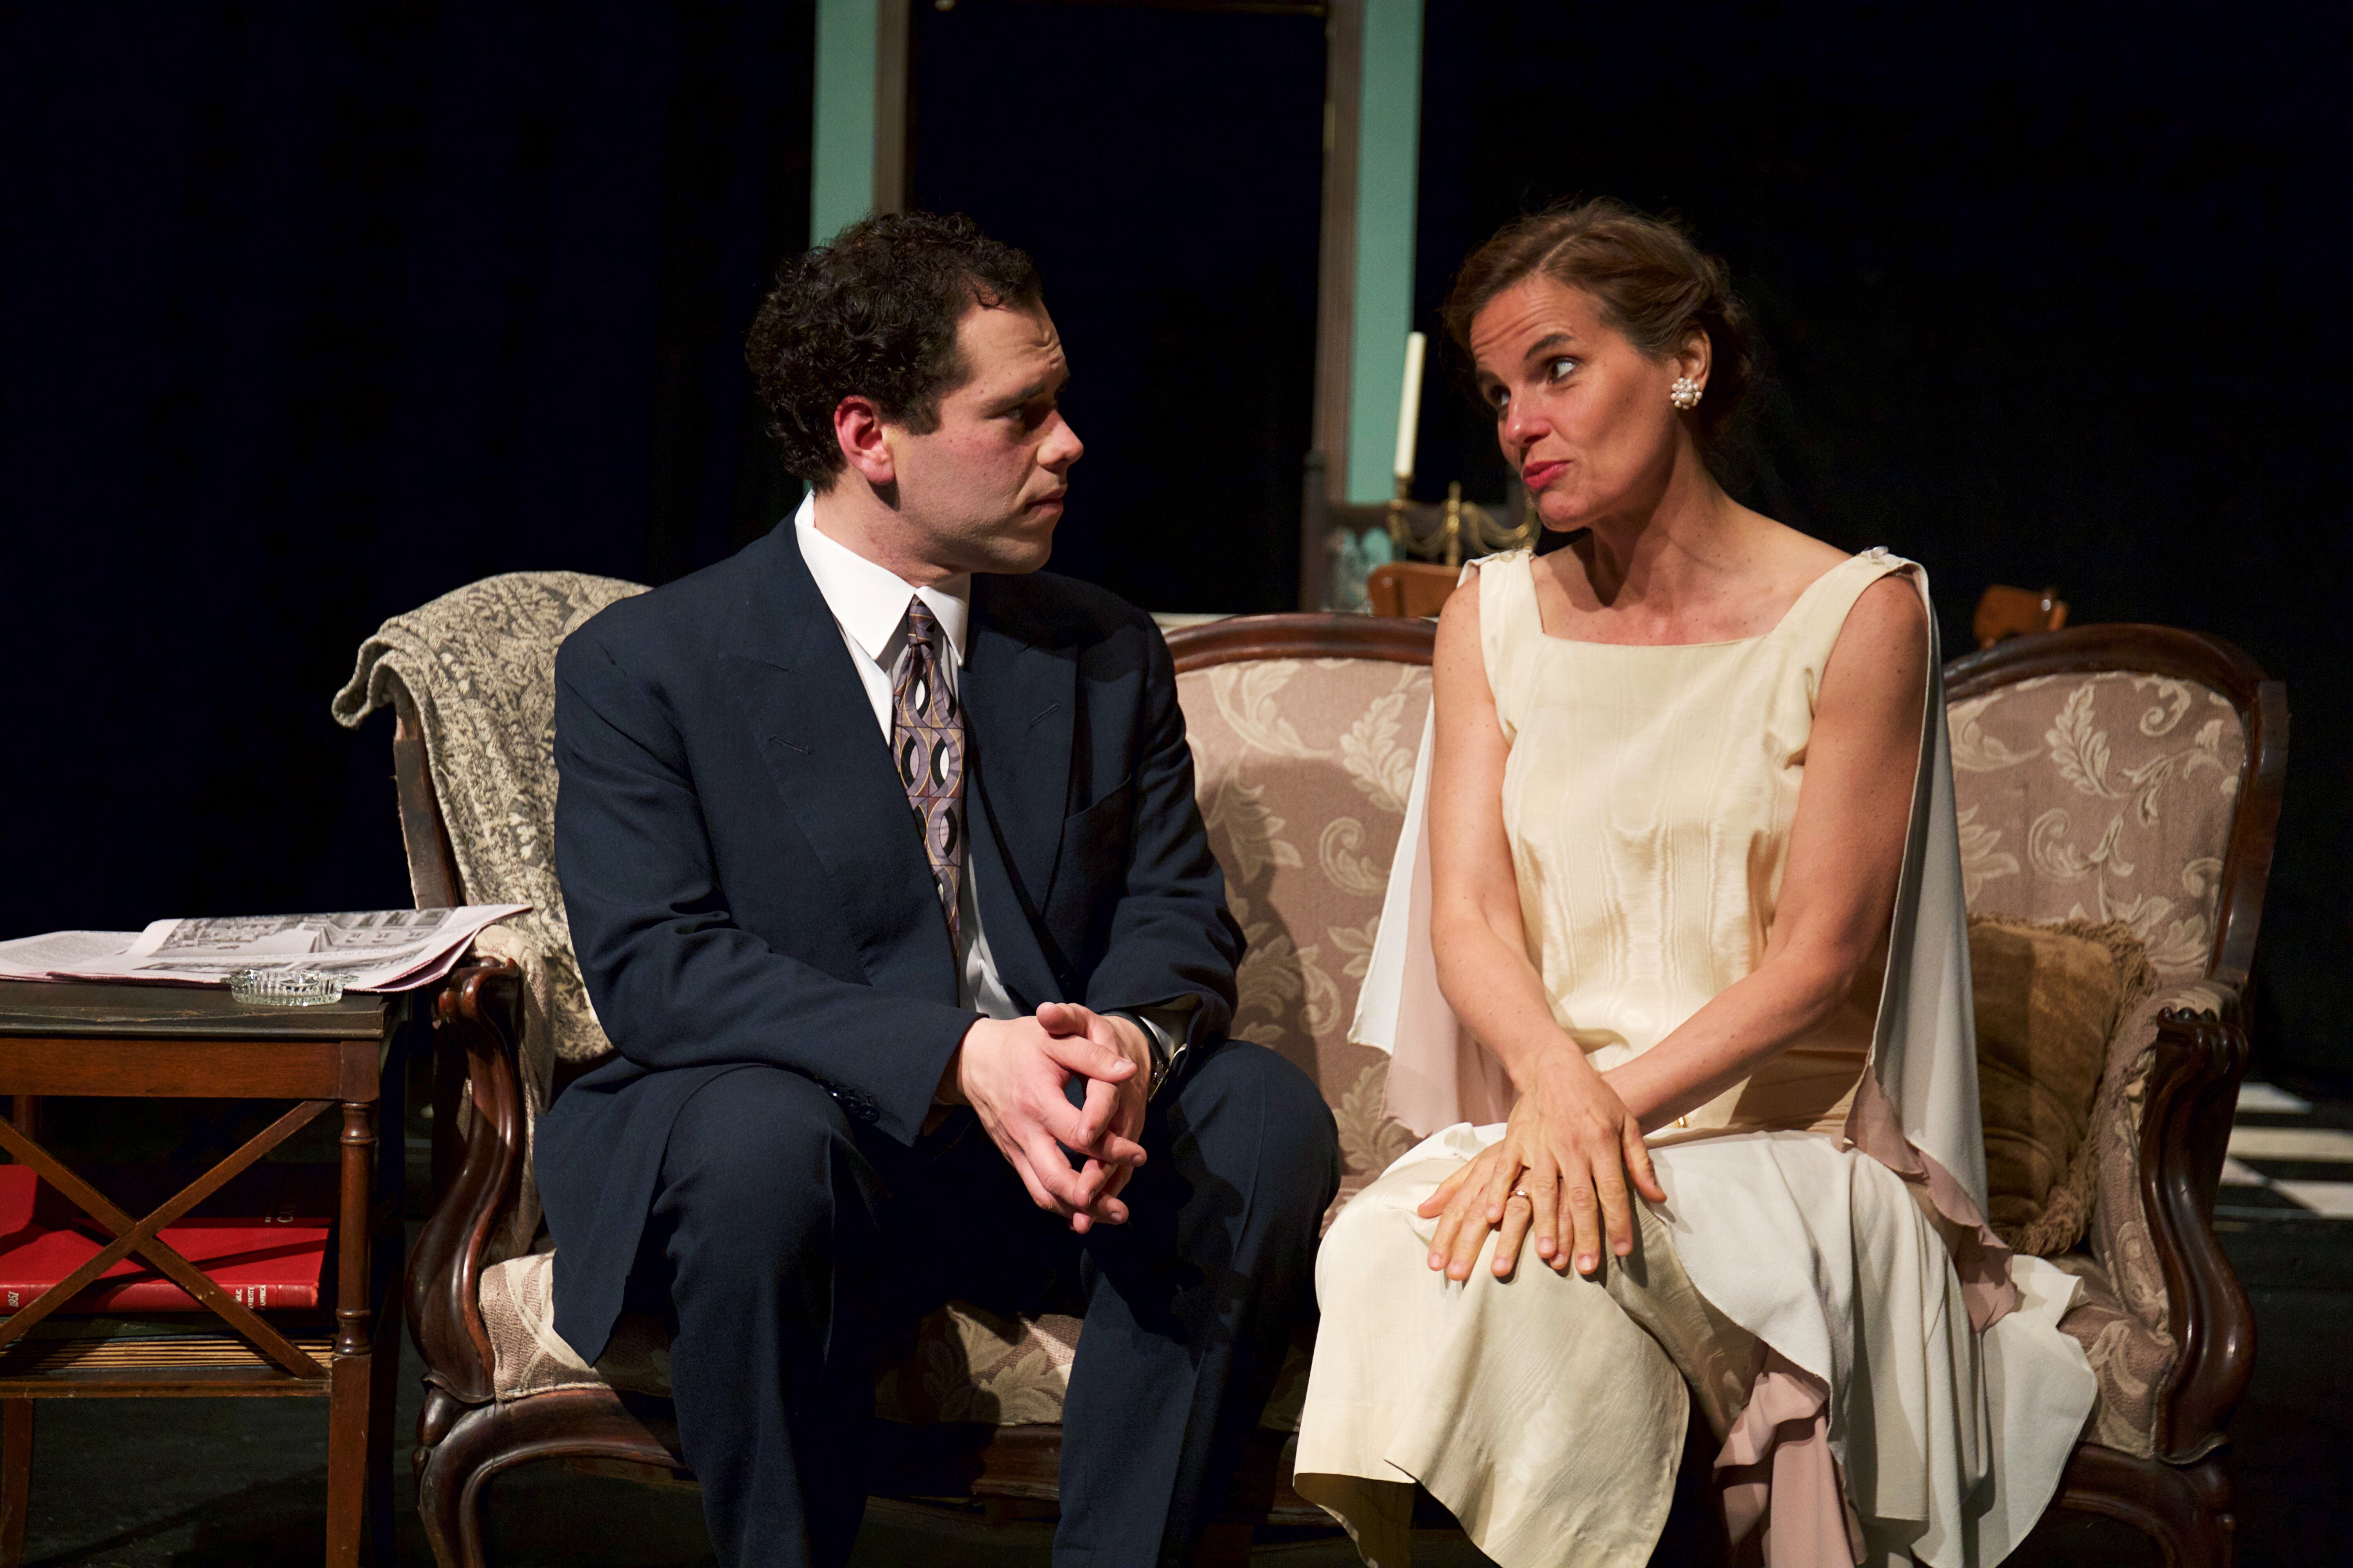 tom and jim in the glass menagerie by tennessee williams Review: this 'glass menagerie' has strength at its core  even playwright  tennessee williams, through tom's narration, tells us that memory  anneliese  moon and zach lane, as laura and gentleman caller jim, do the best.